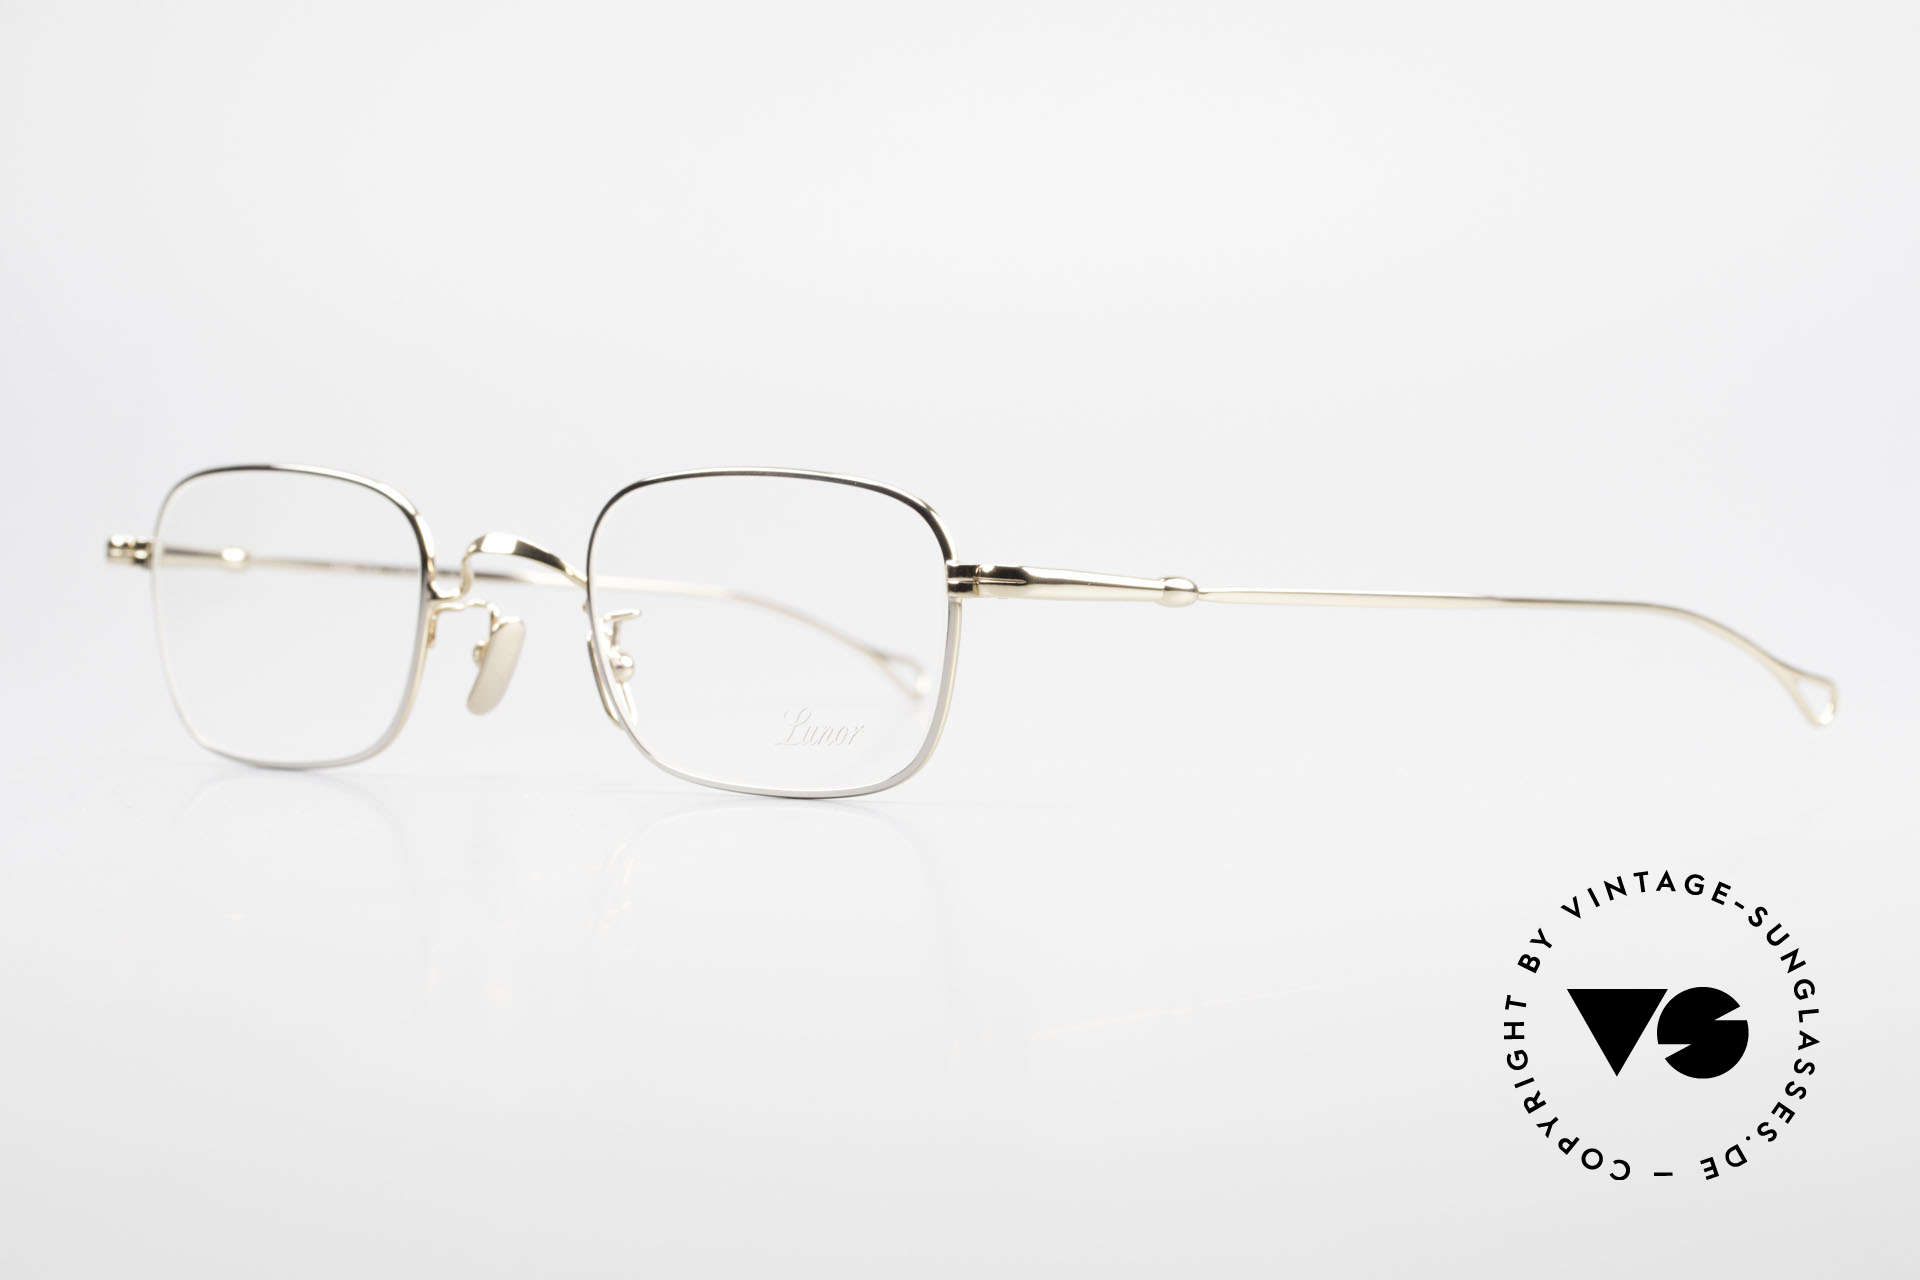 Lunor V 109 Old Lunor Men's Frame Metal, without ostentatious logos (but in a timeless elegance), Made for Men